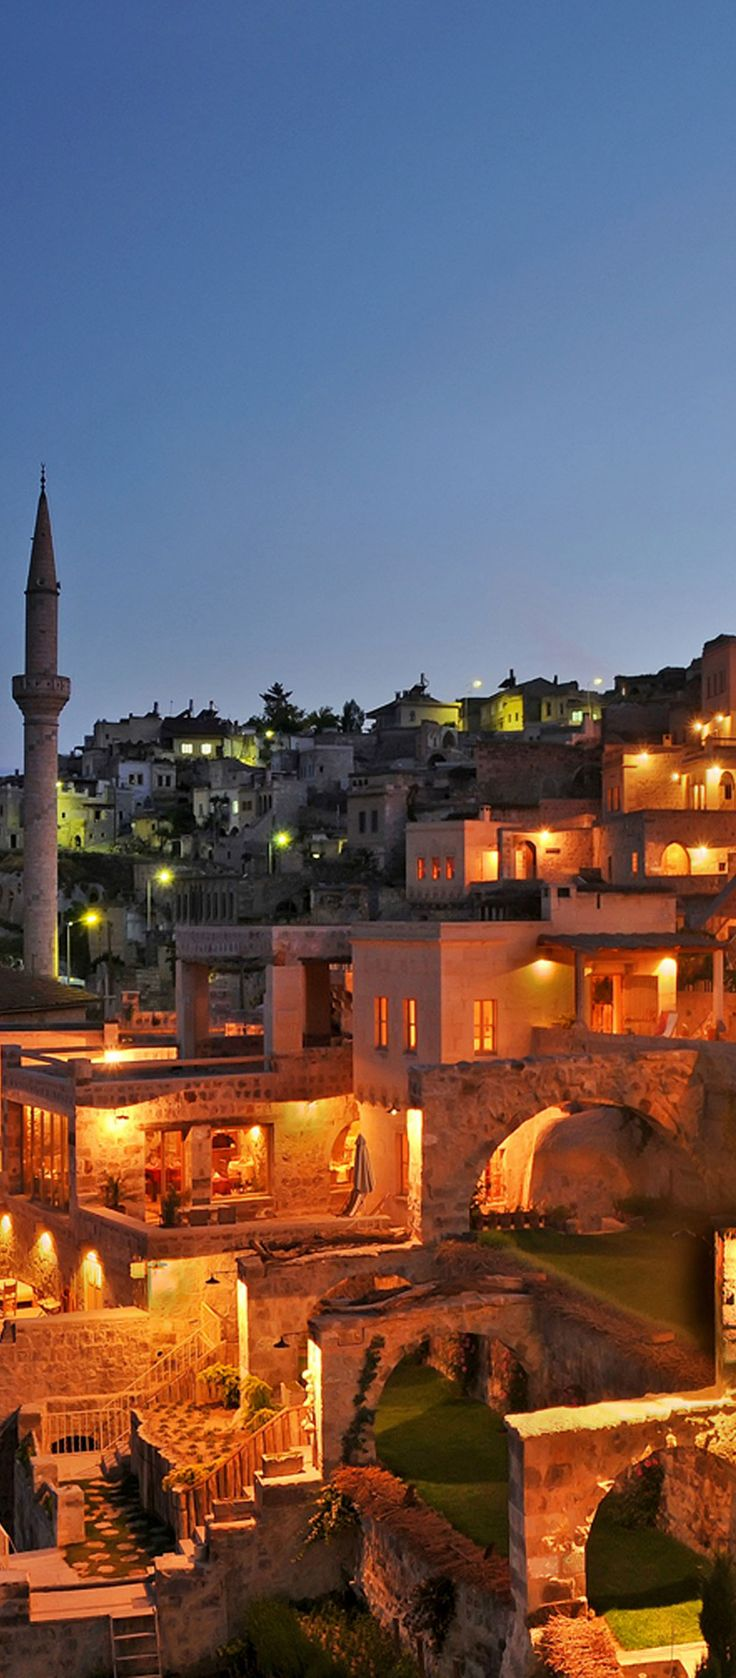 Romantic night lights of Turkey